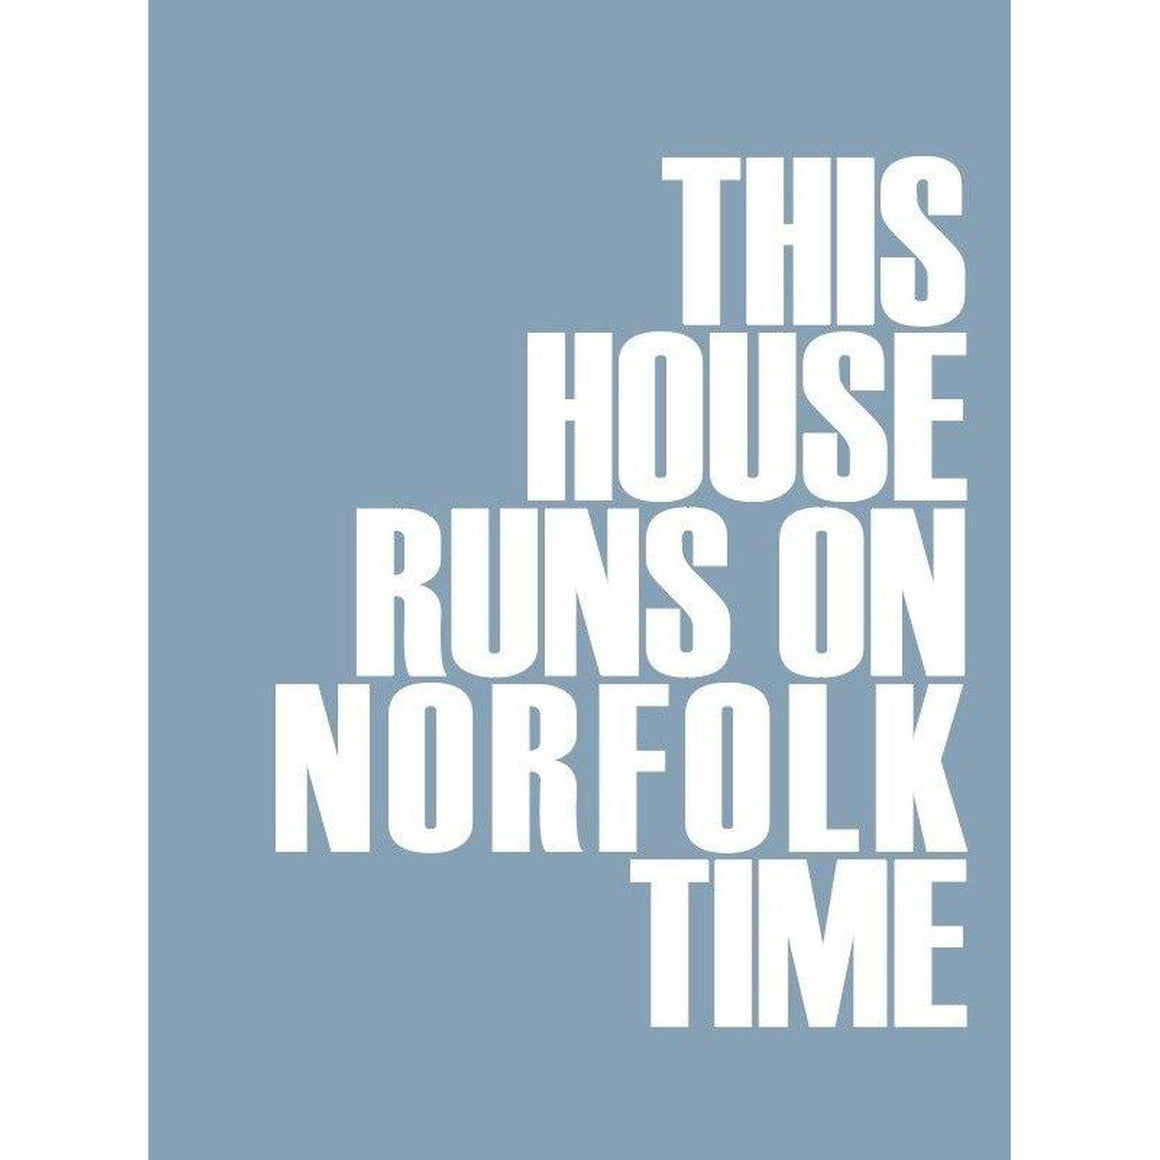 Norfolk Time Typographic Print